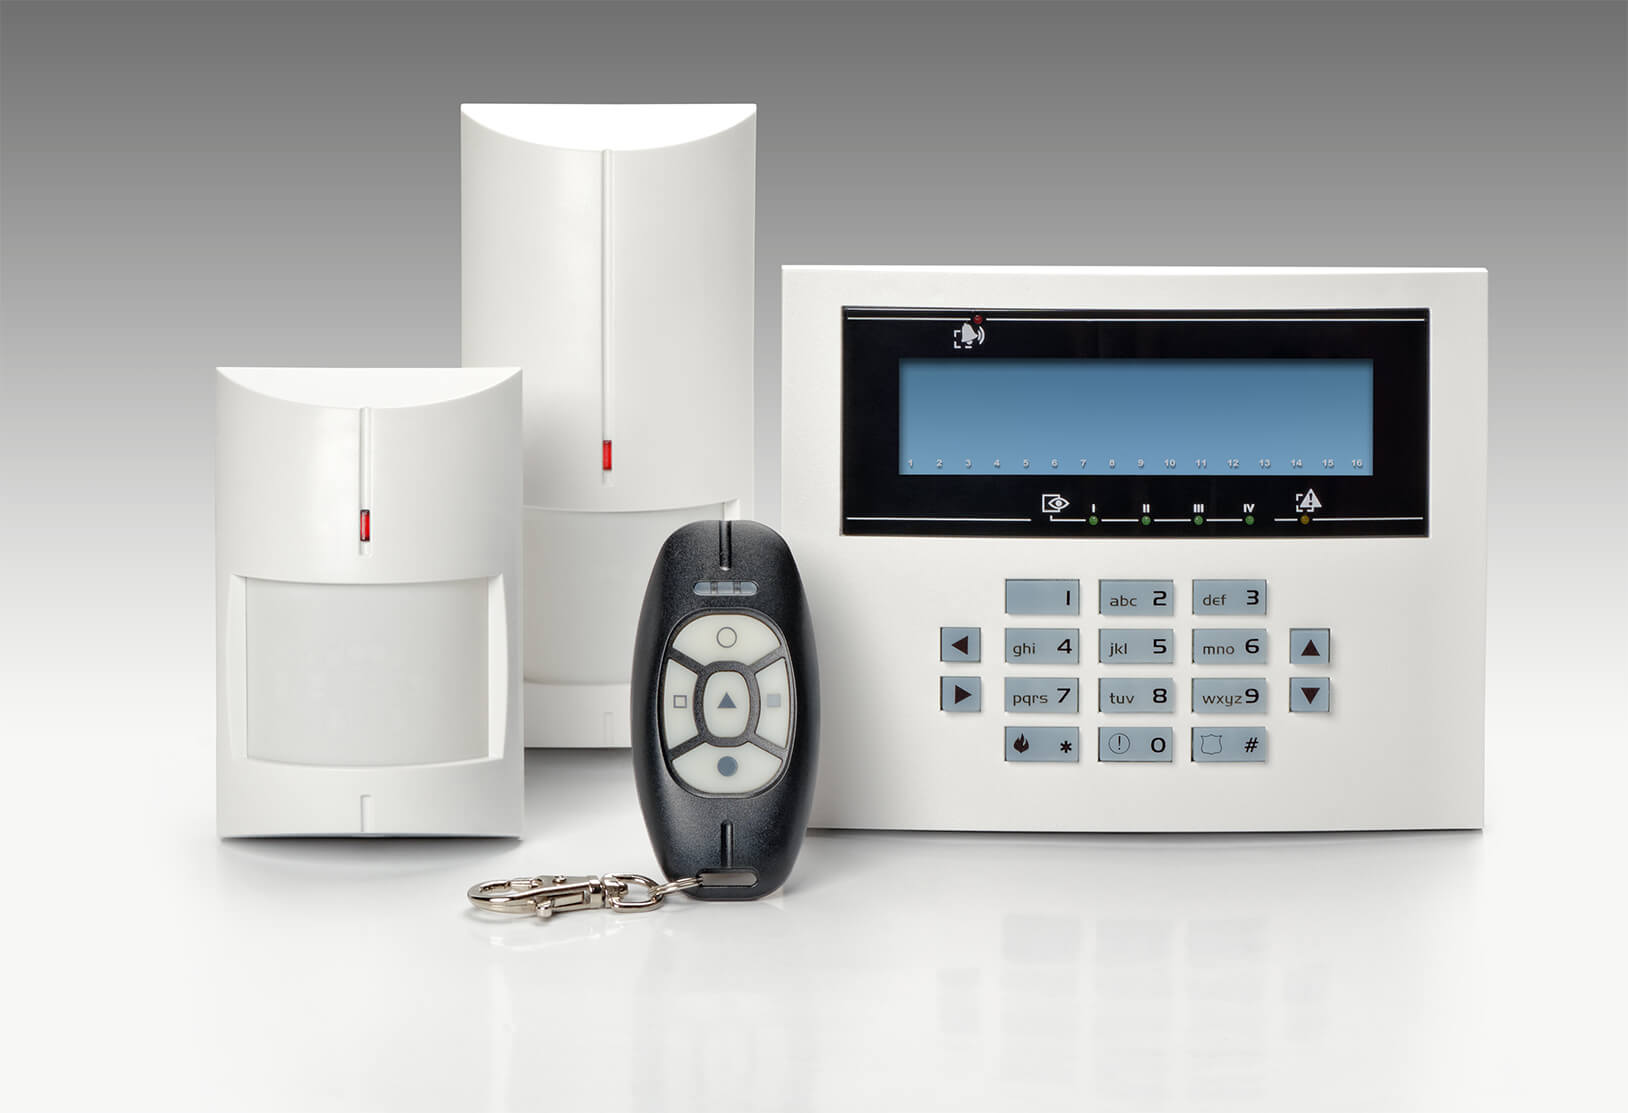 Business & Residential NACOSS Approved Burglar Alarms In Victoria Dock E16 - Local Victoria Dock E16 security company.Call 02078872244 - Dedicated to Safety & Security. Companies, shops and homes ..